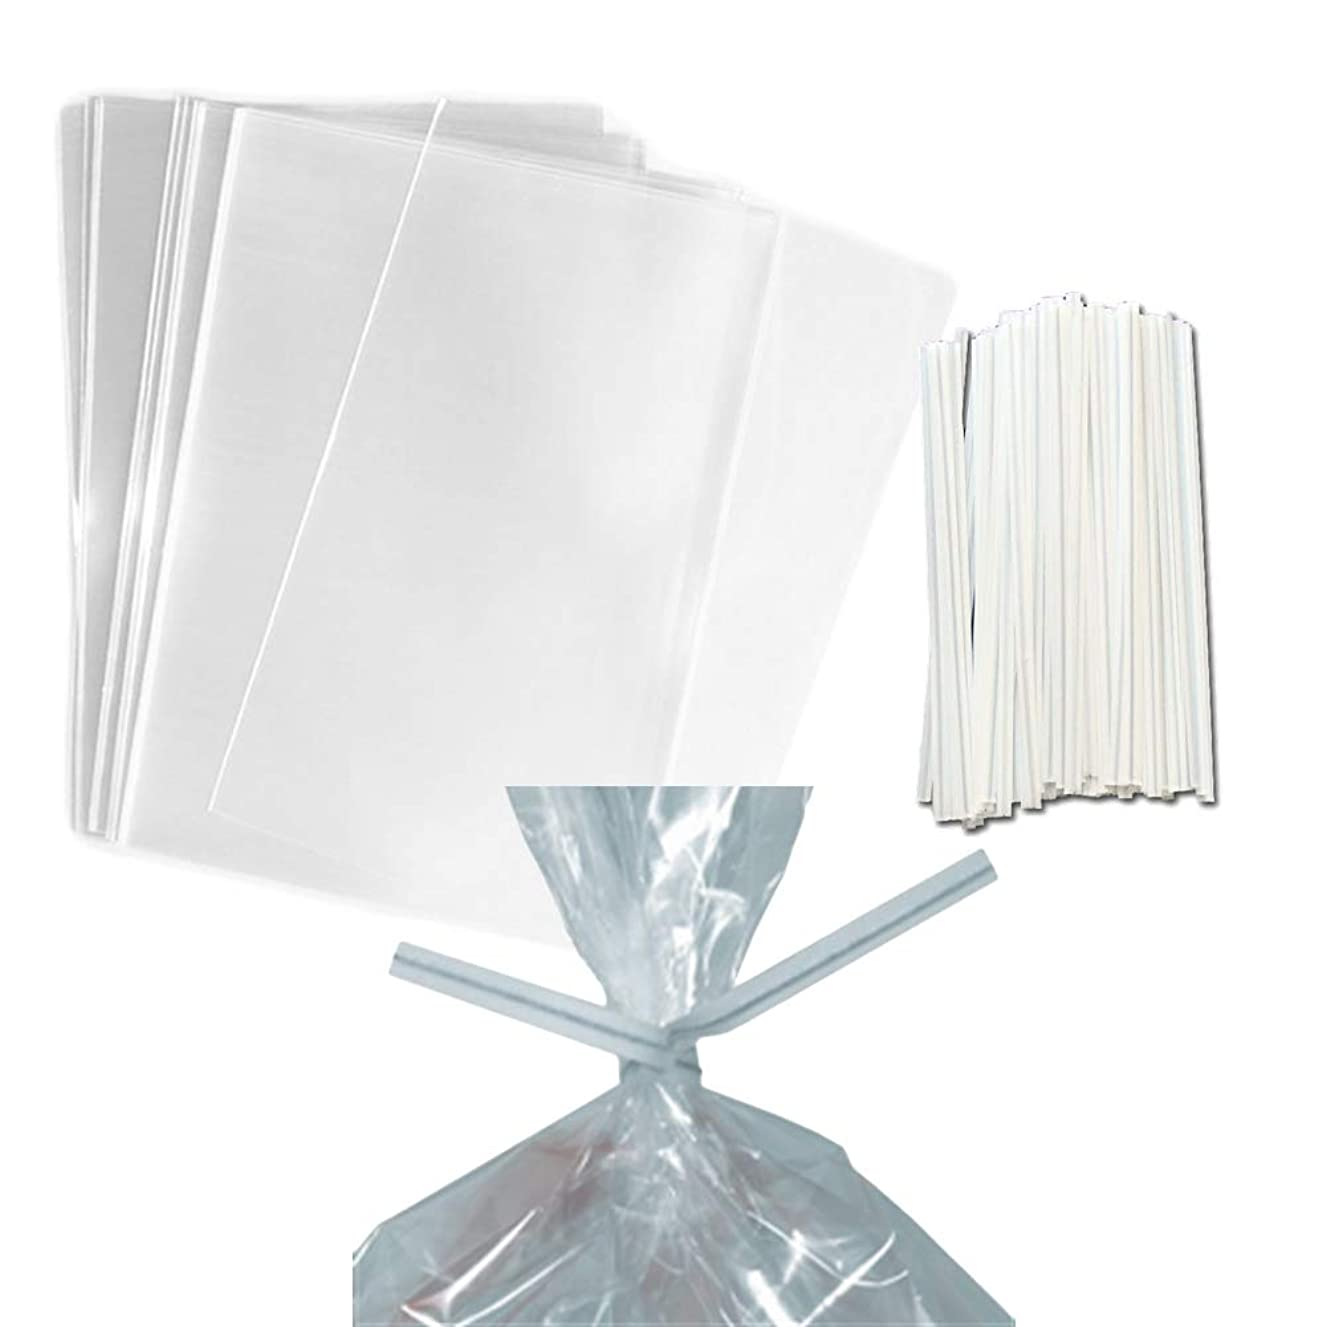 100 Clear Treat & Favor Bags | Ties Included | Great For Cake Pops, Candy, Gifts, Wedding or Party Favors | Food Safe Plastic | Stronger Than Cellophane | 1.5 Mils Thickness | 5.75